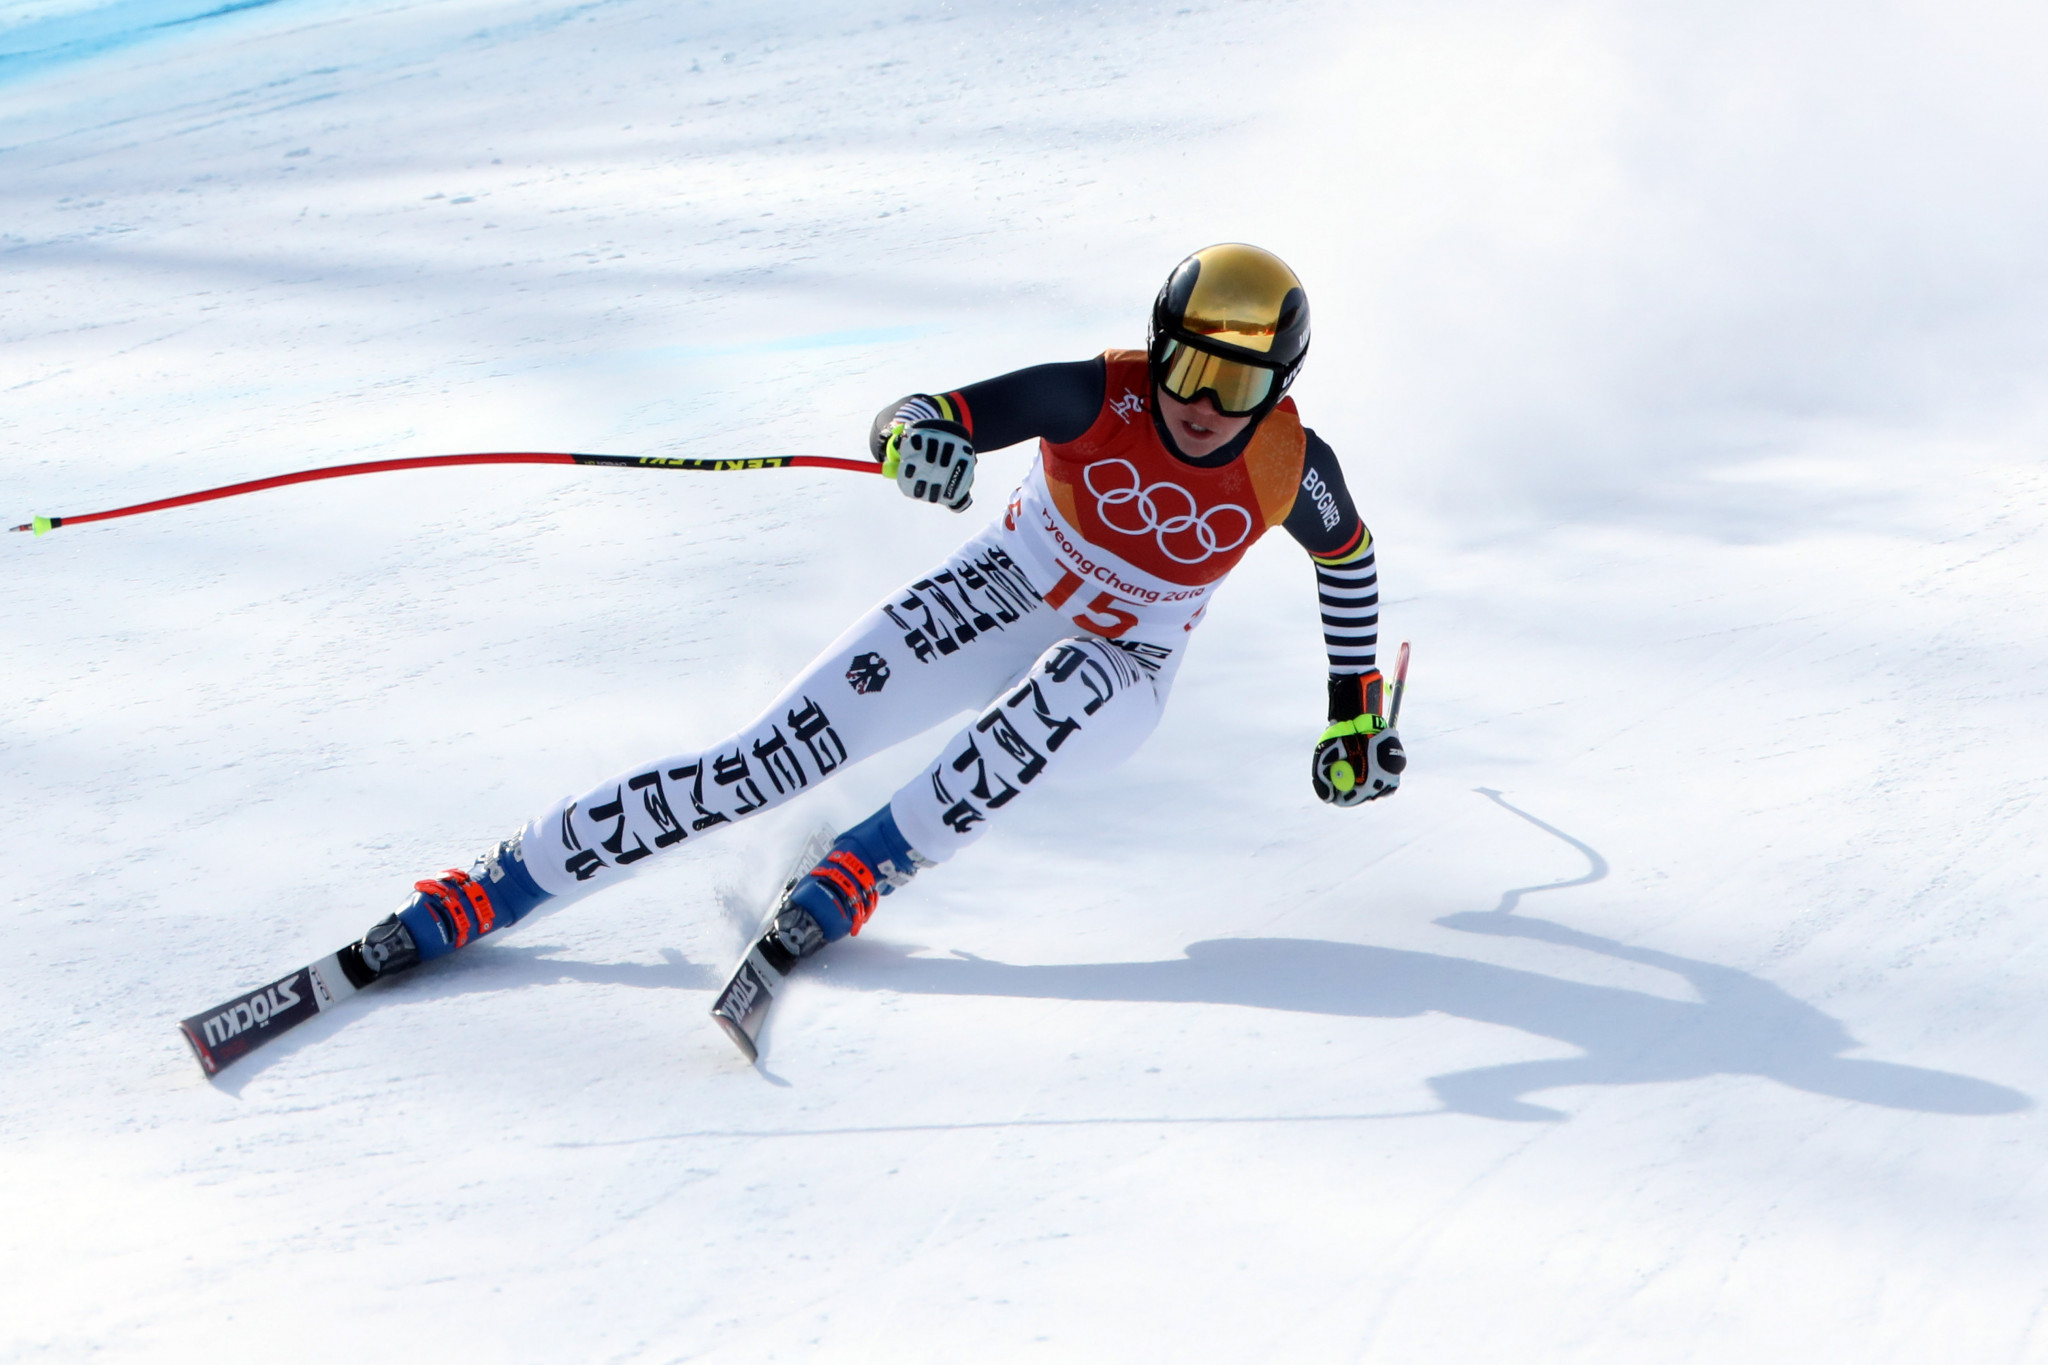 Rebensburg hoping for home success at penultimate FIS Alpine World Cup leg